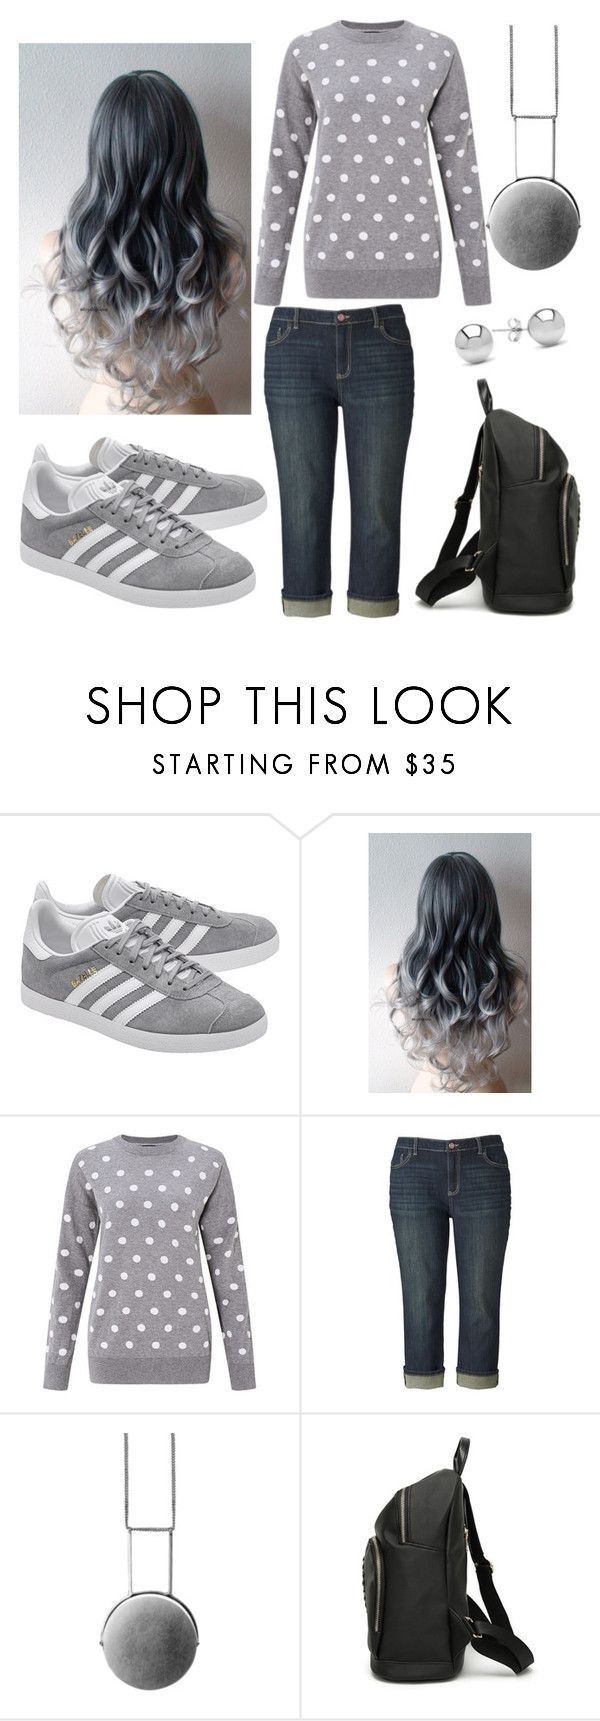 """""""Untitled #2416"""" by mountain-girl-lynn ❤ liked on Polyvore featuring adidas Originals, Simply Vera, Mei-Li Rose and Jewelonfire"""